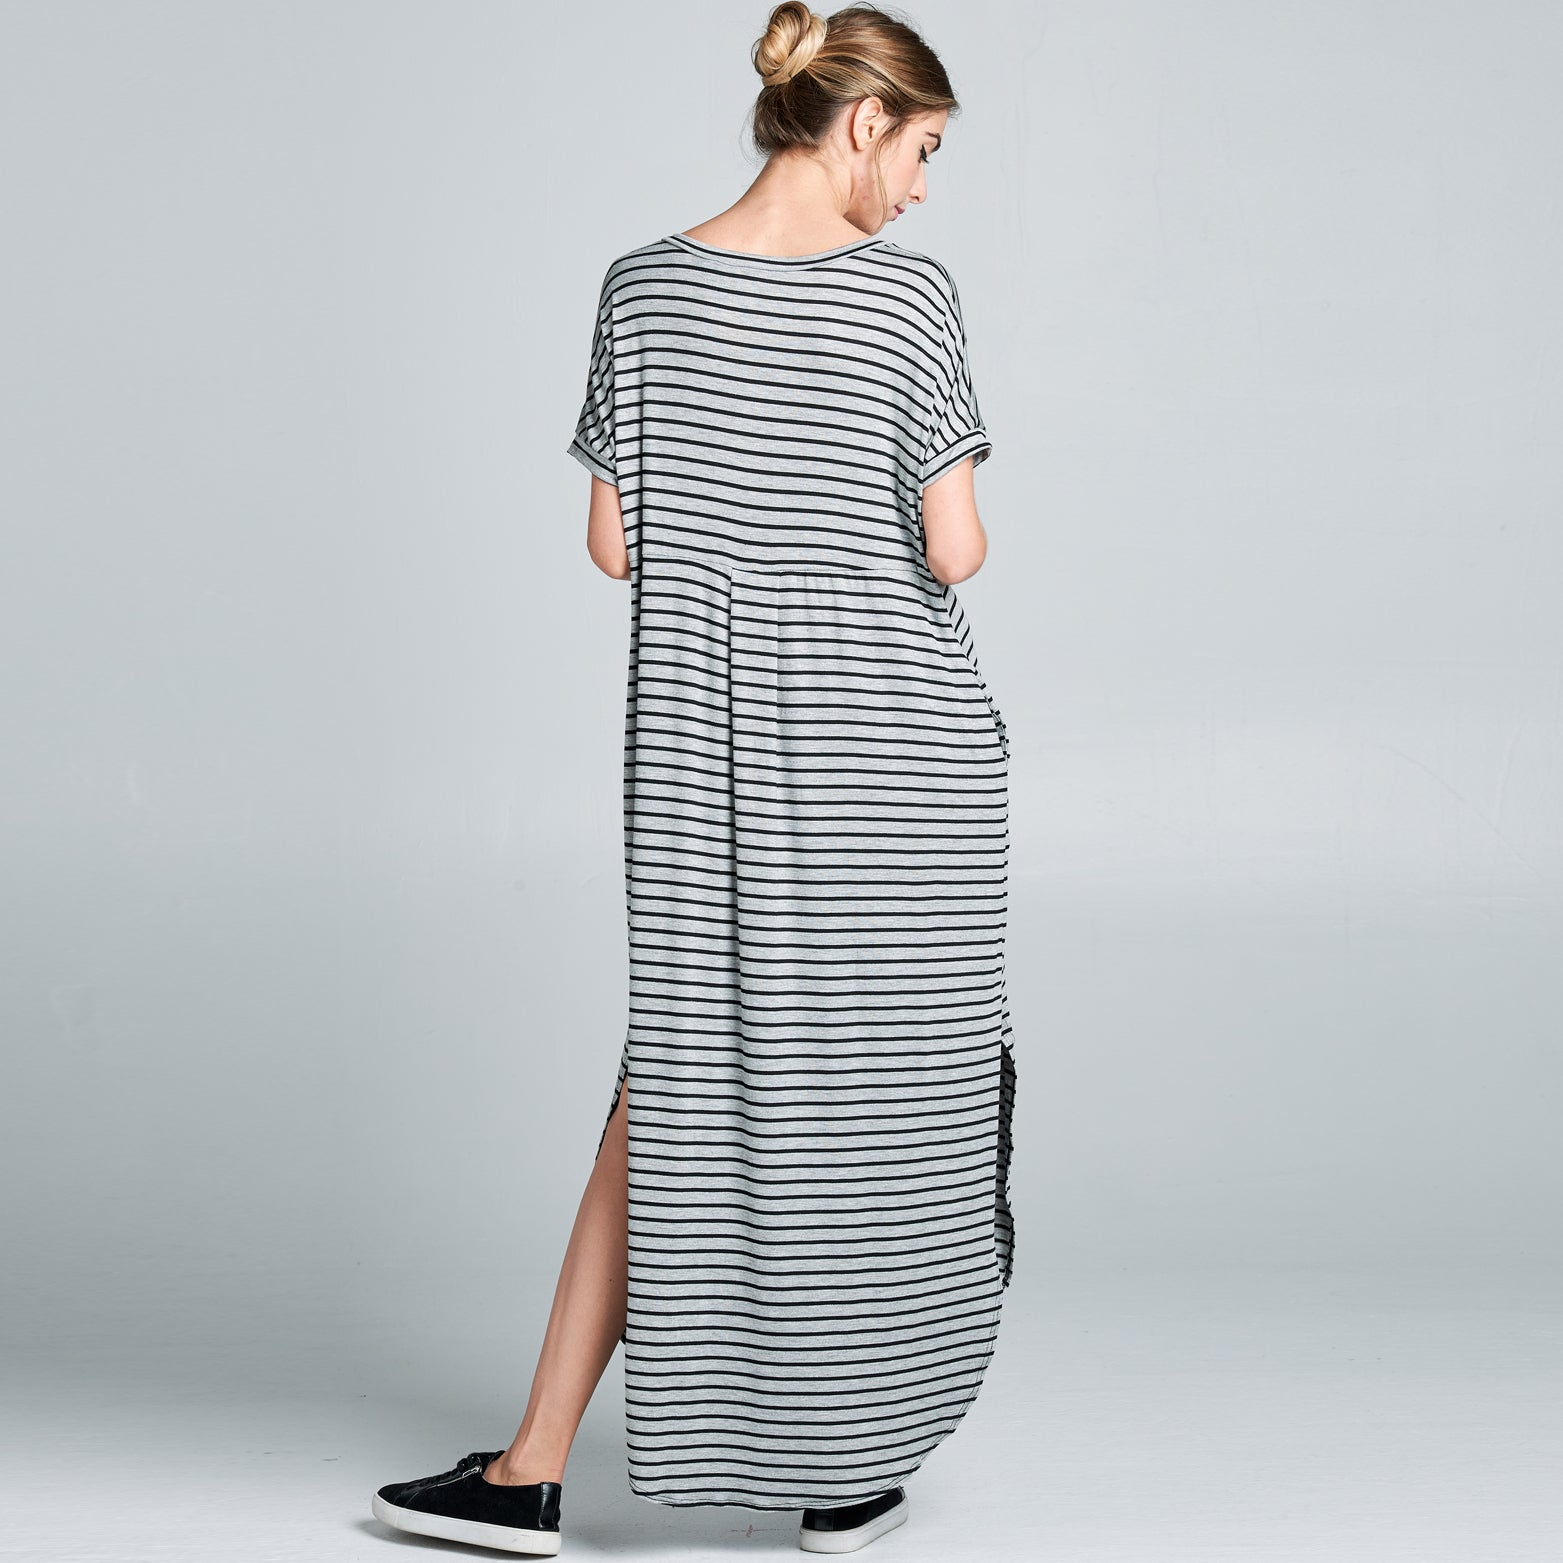 RL Grey Black Striped Maxi Dress - Love, Kuza